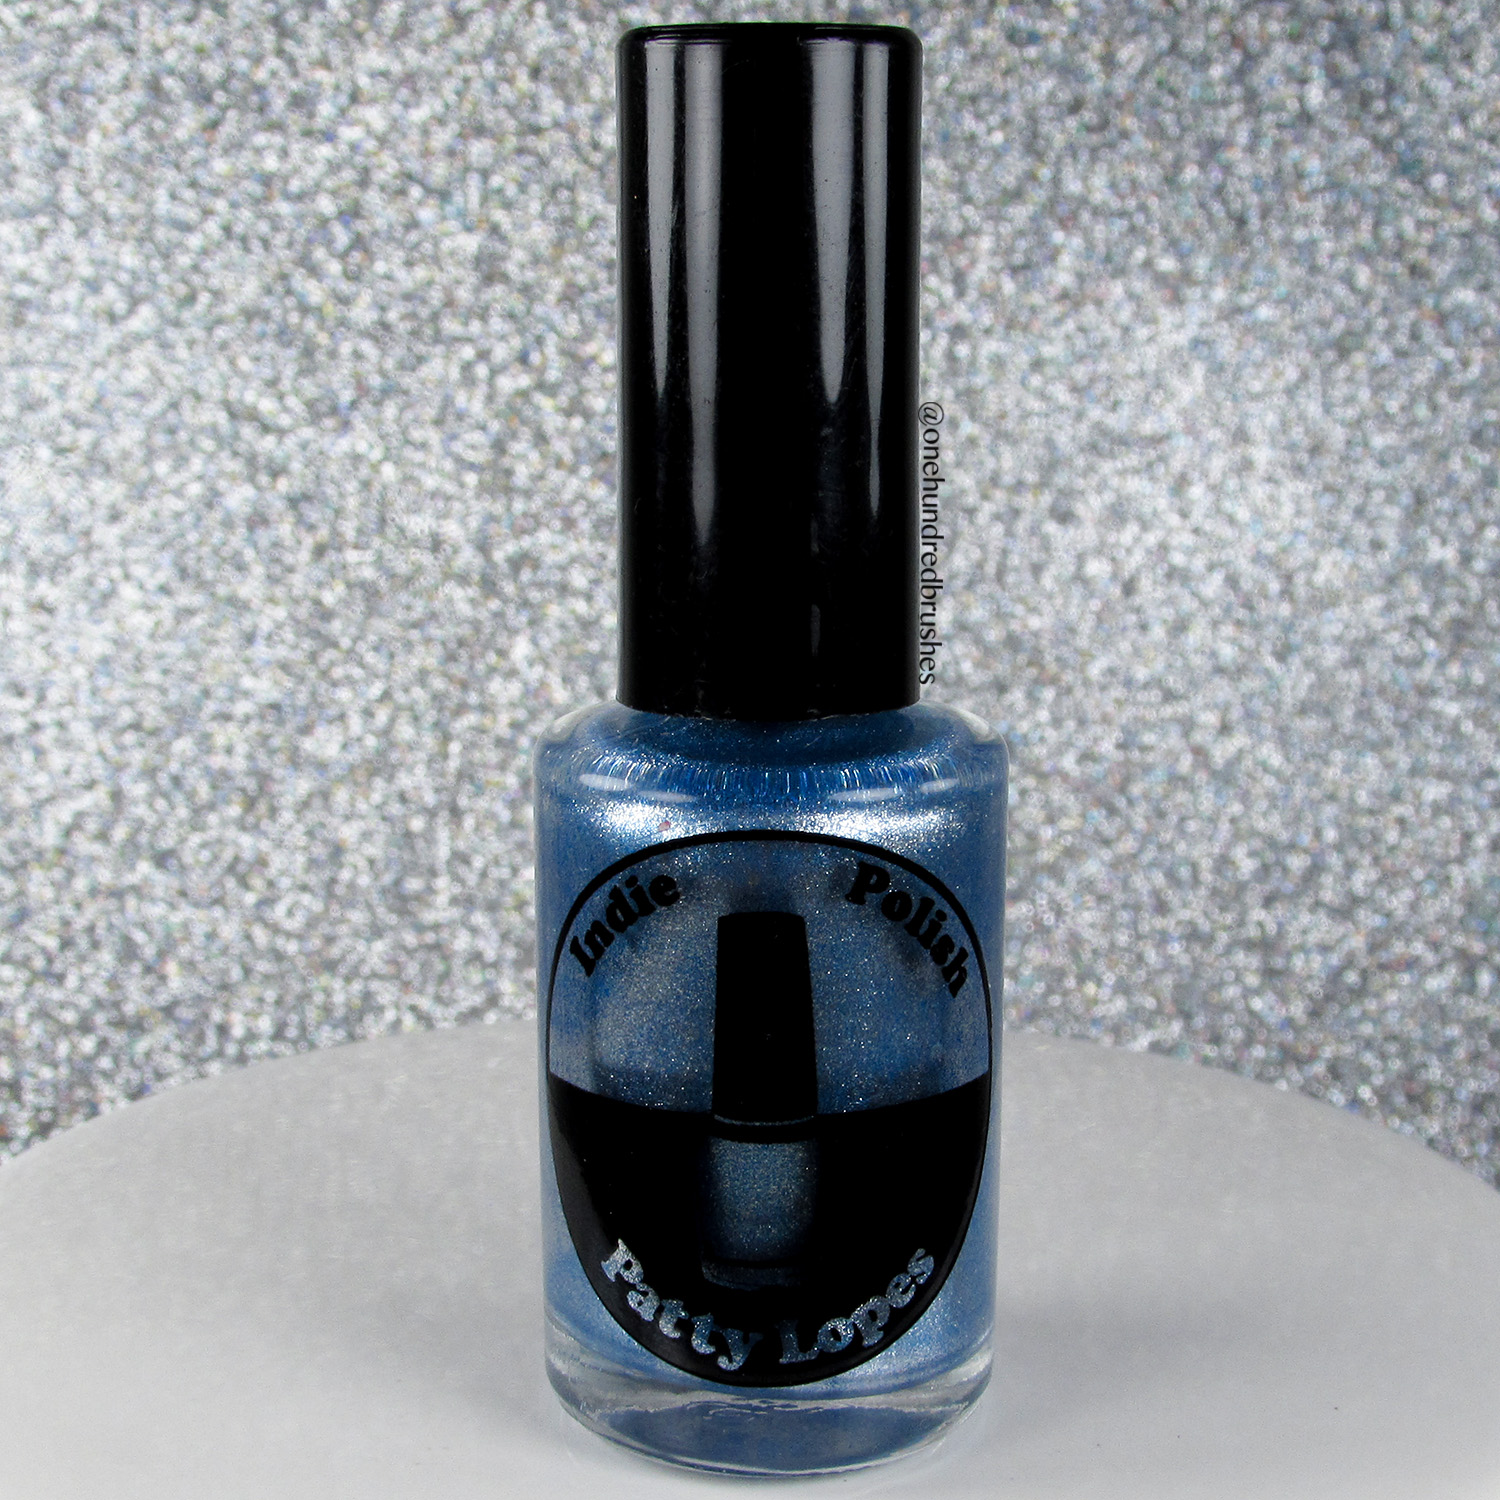 Blue Mirror - bottle - Indie Patty Lopes - psyches beau - mirror collection